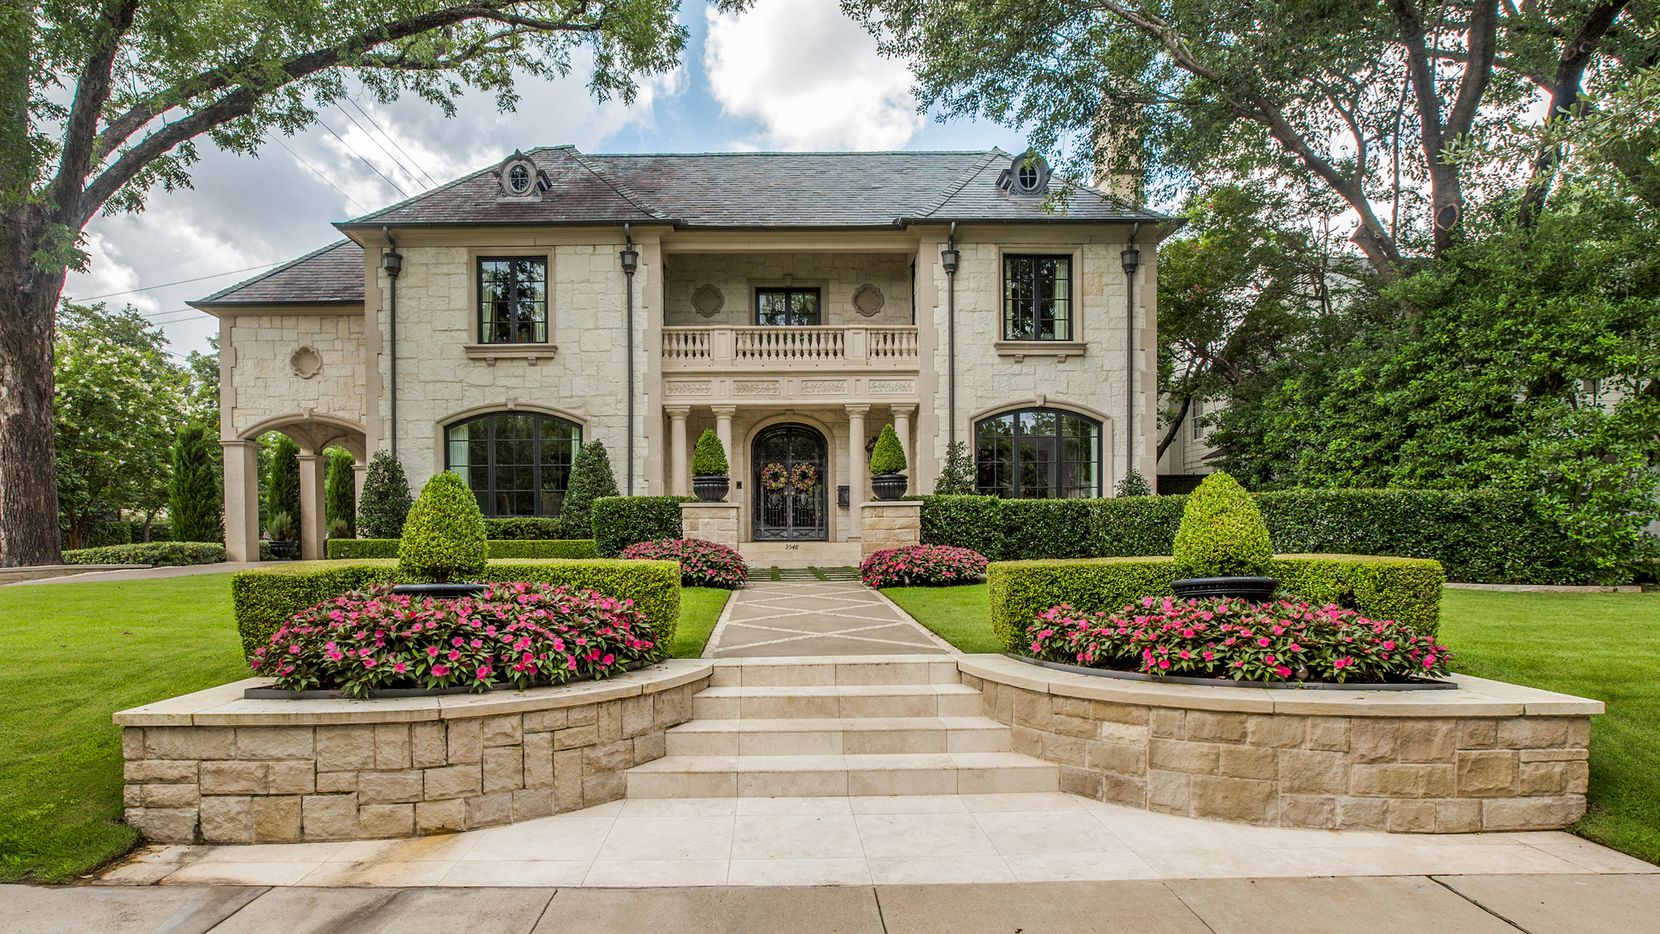 The French manor-style home at 3548 Bryn Mawr Drive has an outdoor entertaining space beside the pool.